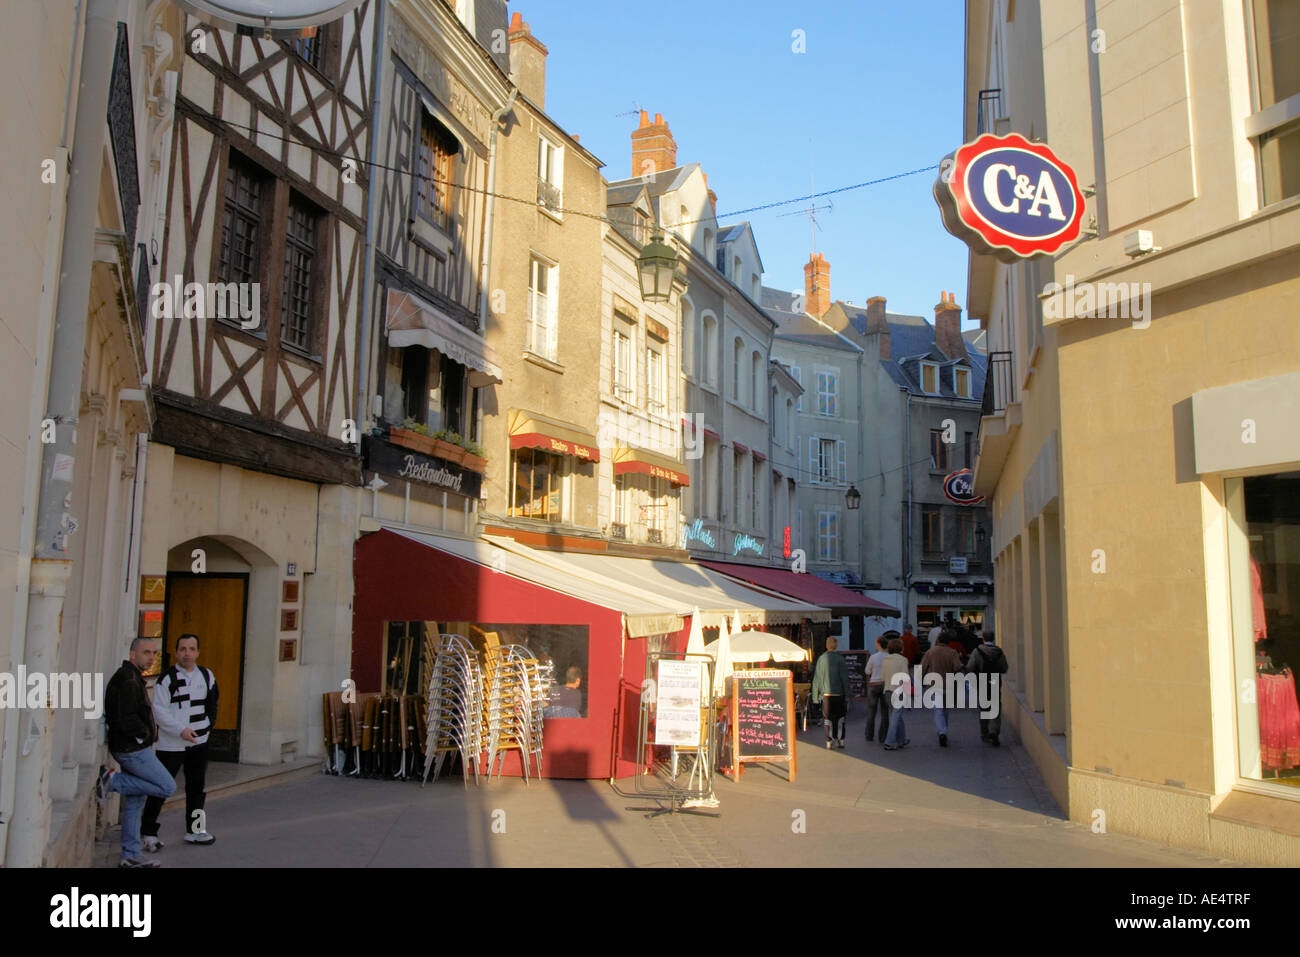 street scene with cafes in city centre of orleans france stock photo 7753342 alamy. Black Bedroom Furniture Sets. Home Design Ideas